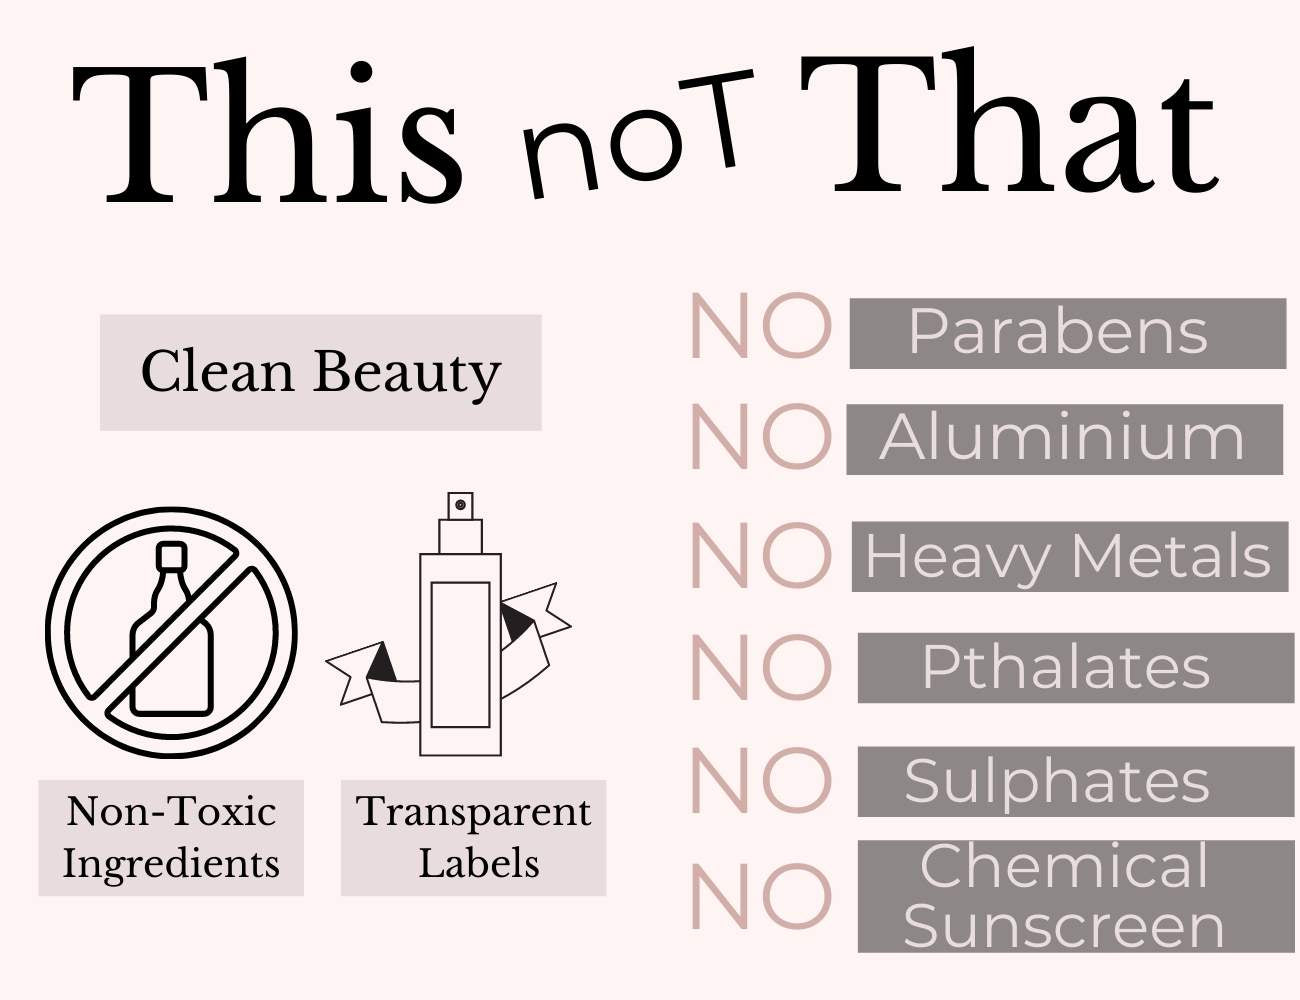 This is an image of toxins to be avoided in your beauty & personal care products